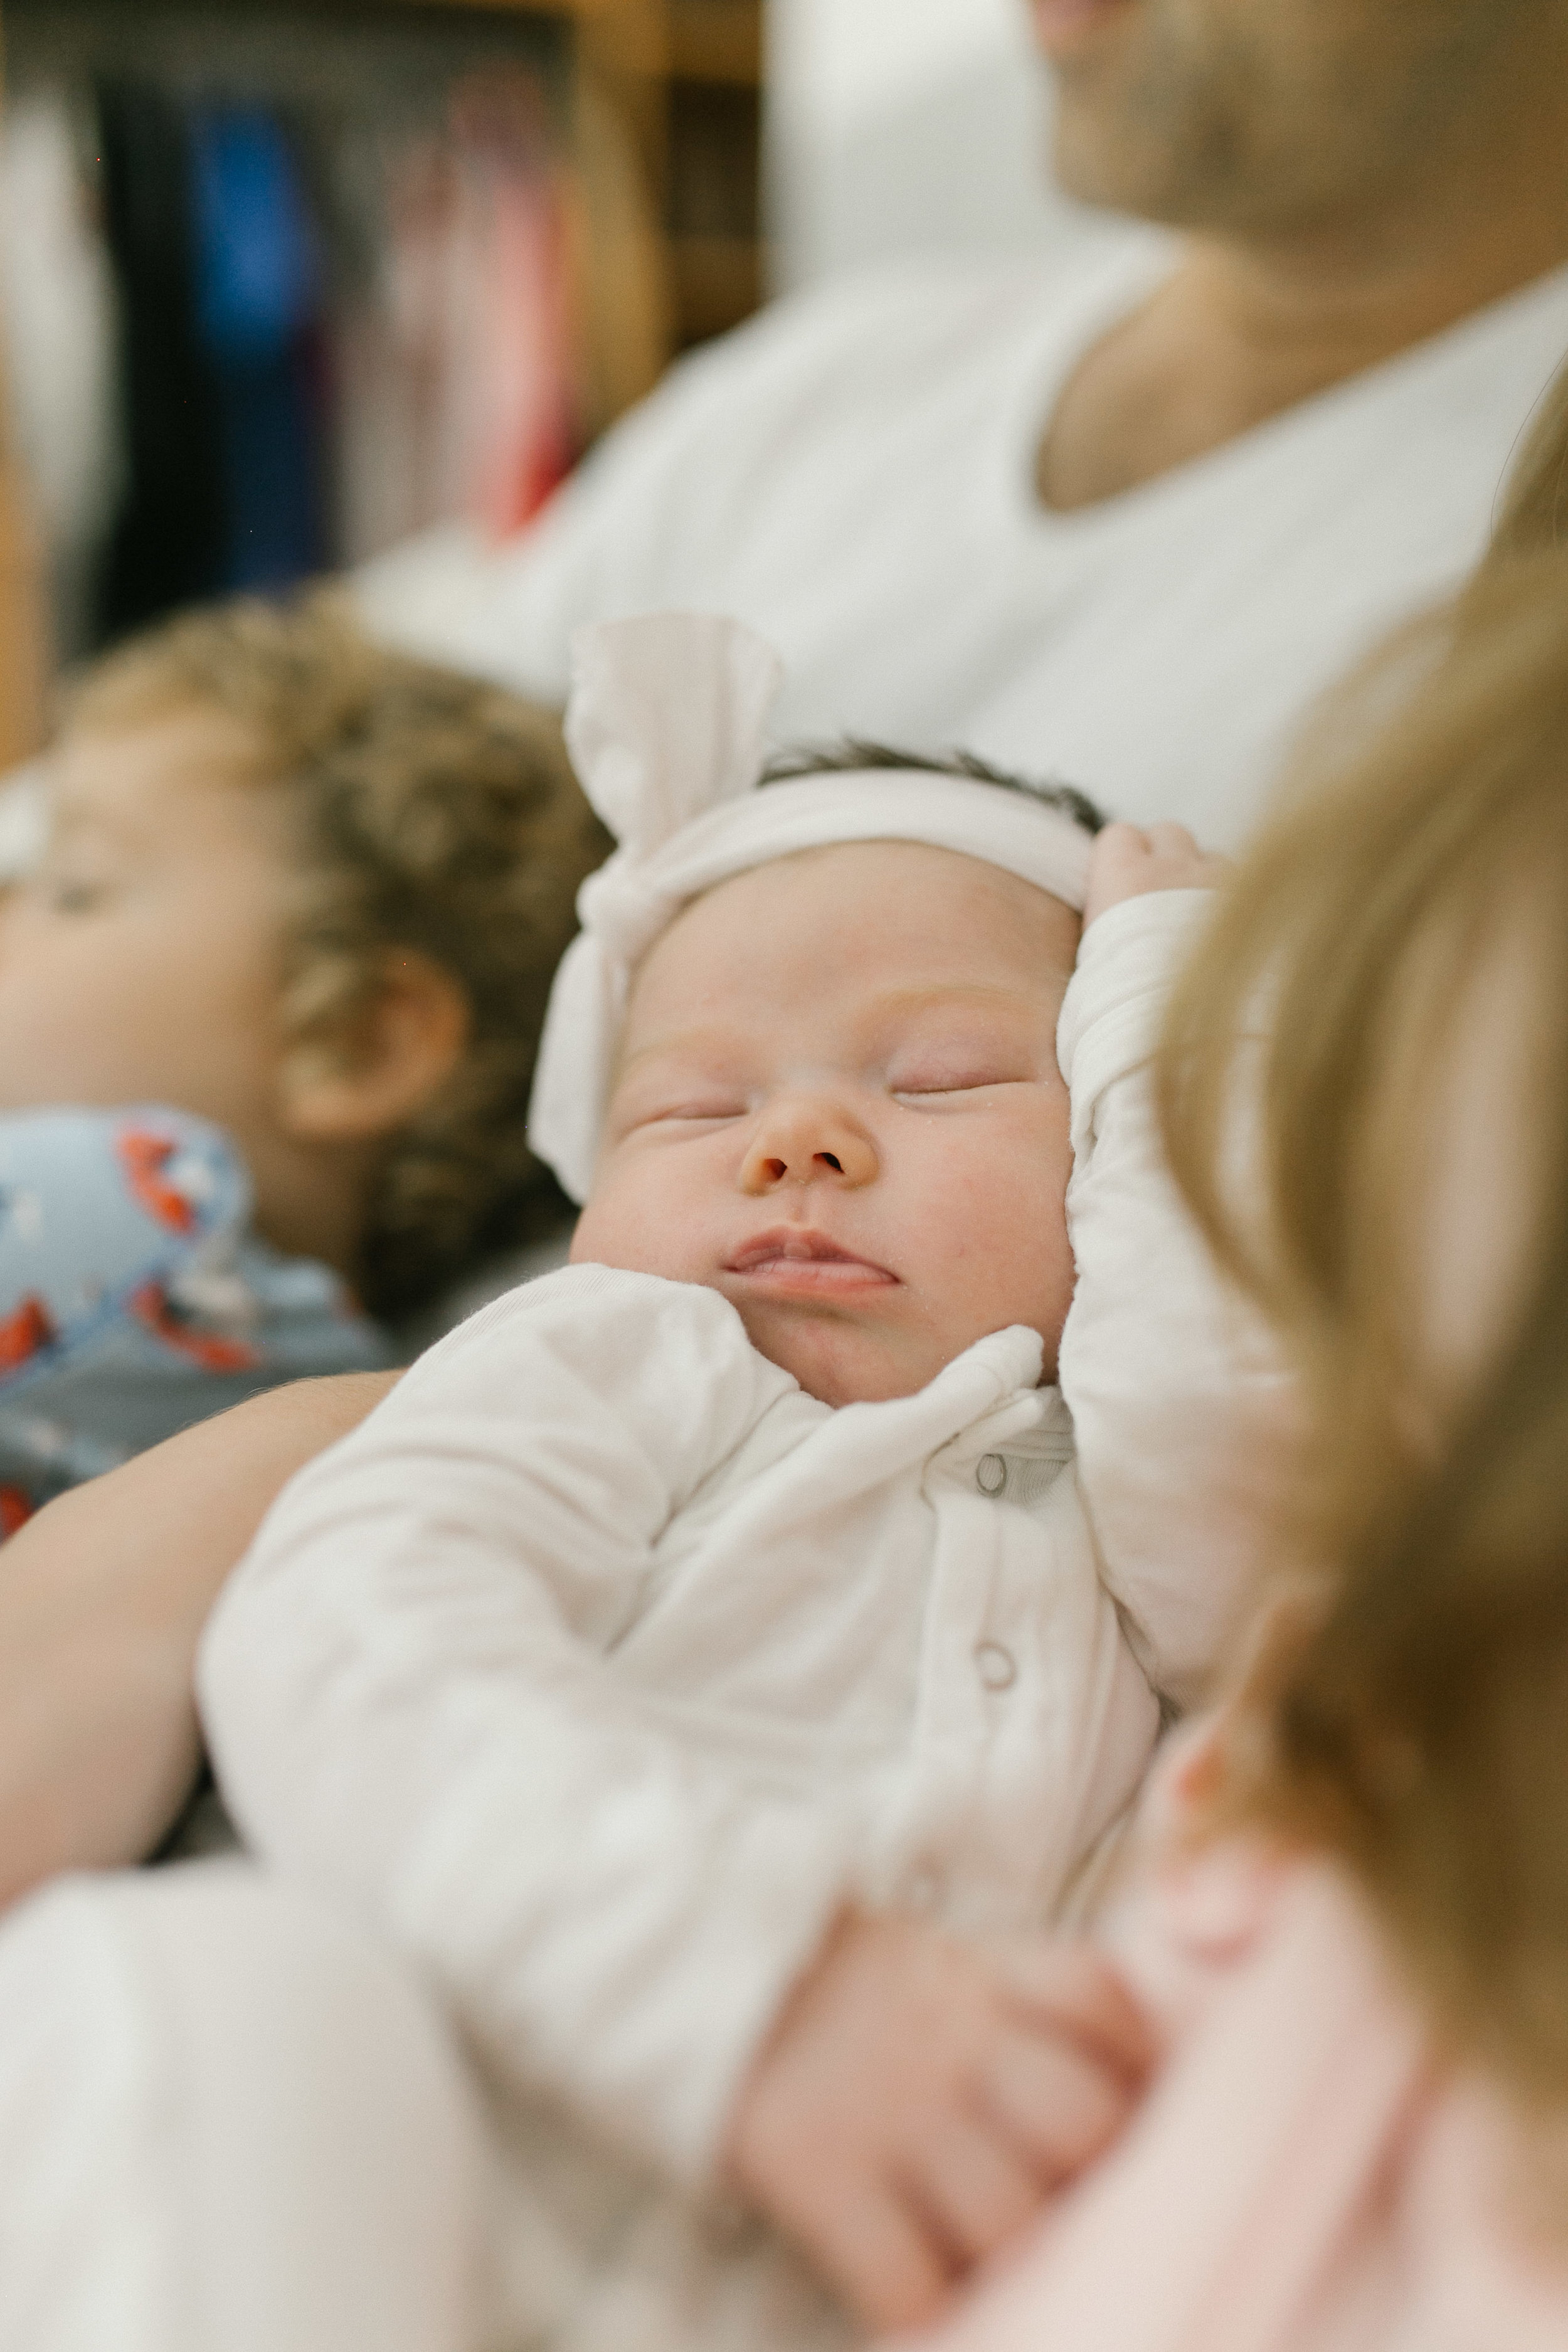 At Home Lifestyle Newborn And Family Photos | Chelsea Macor Photography-21.jpg